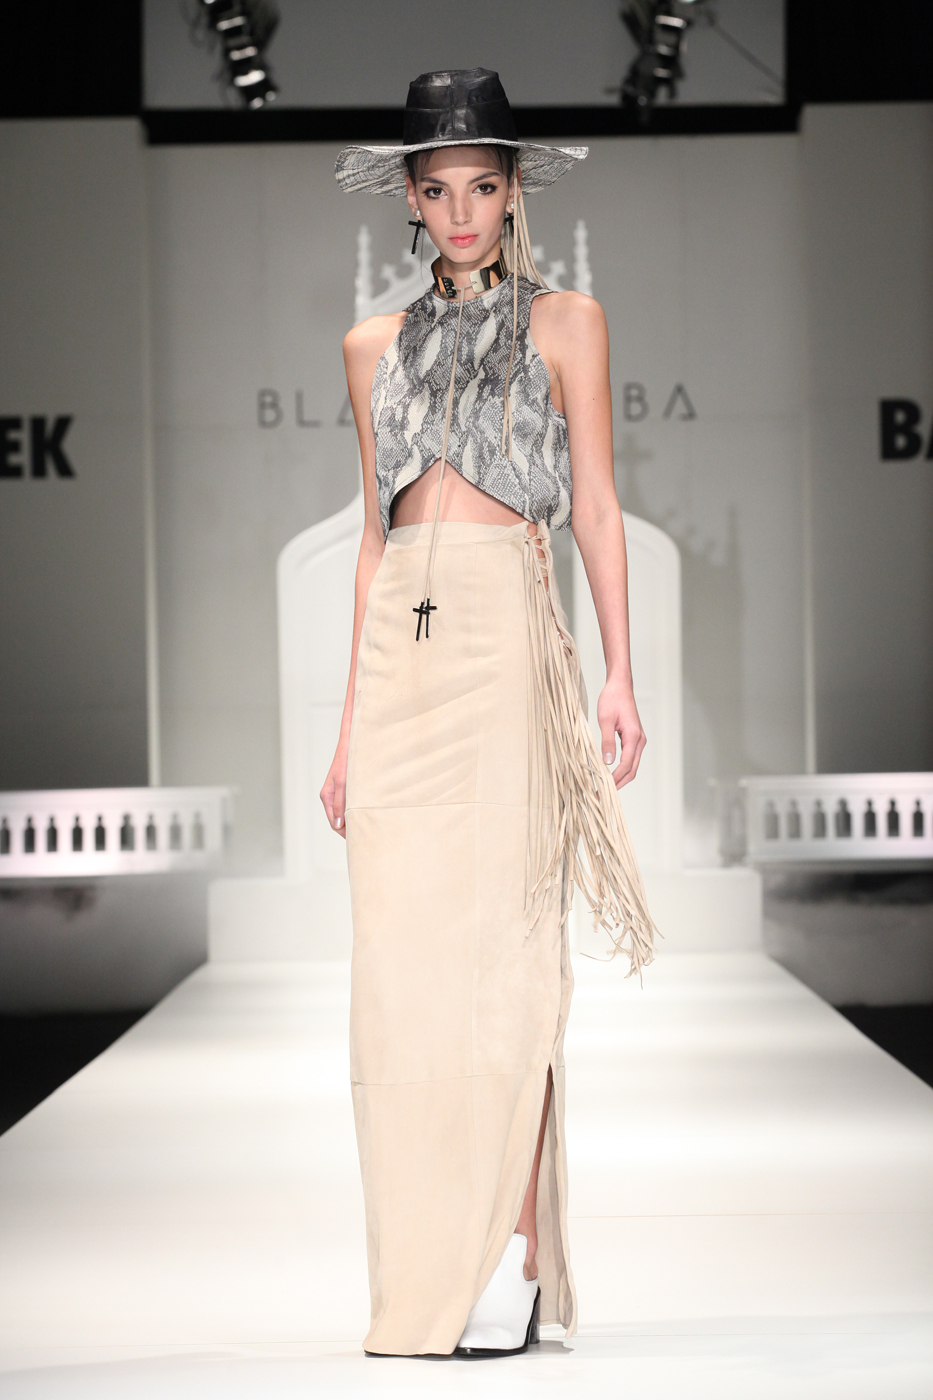 blackmamba-bafweek-fashion-diaries